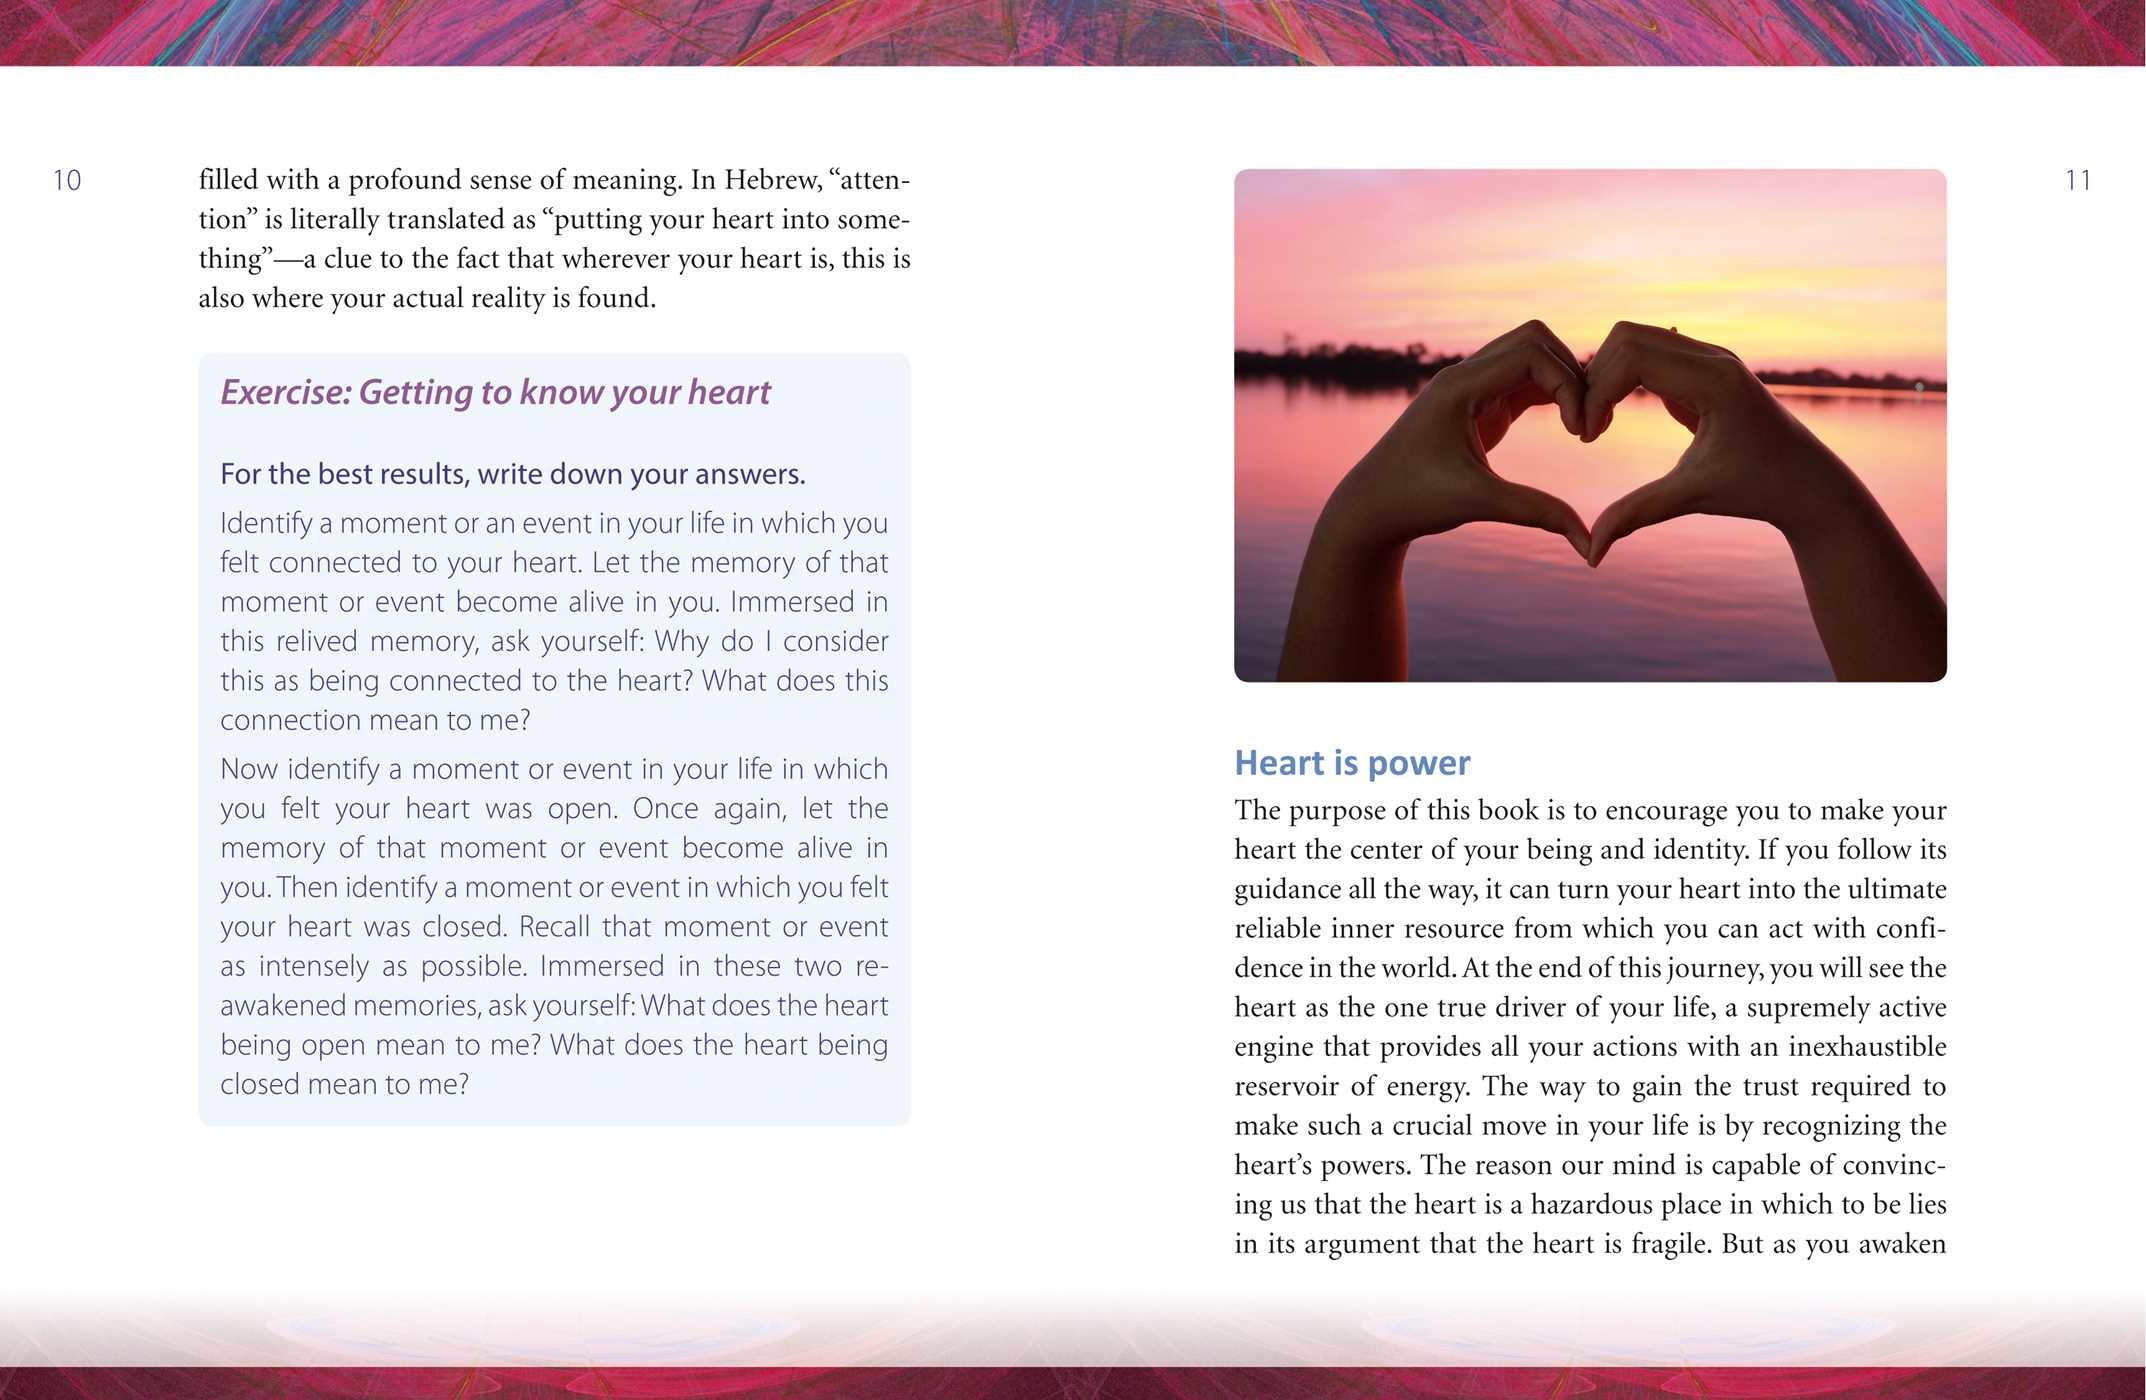 Unlocking the 7 secret powers of the heart 9781620558126.in02